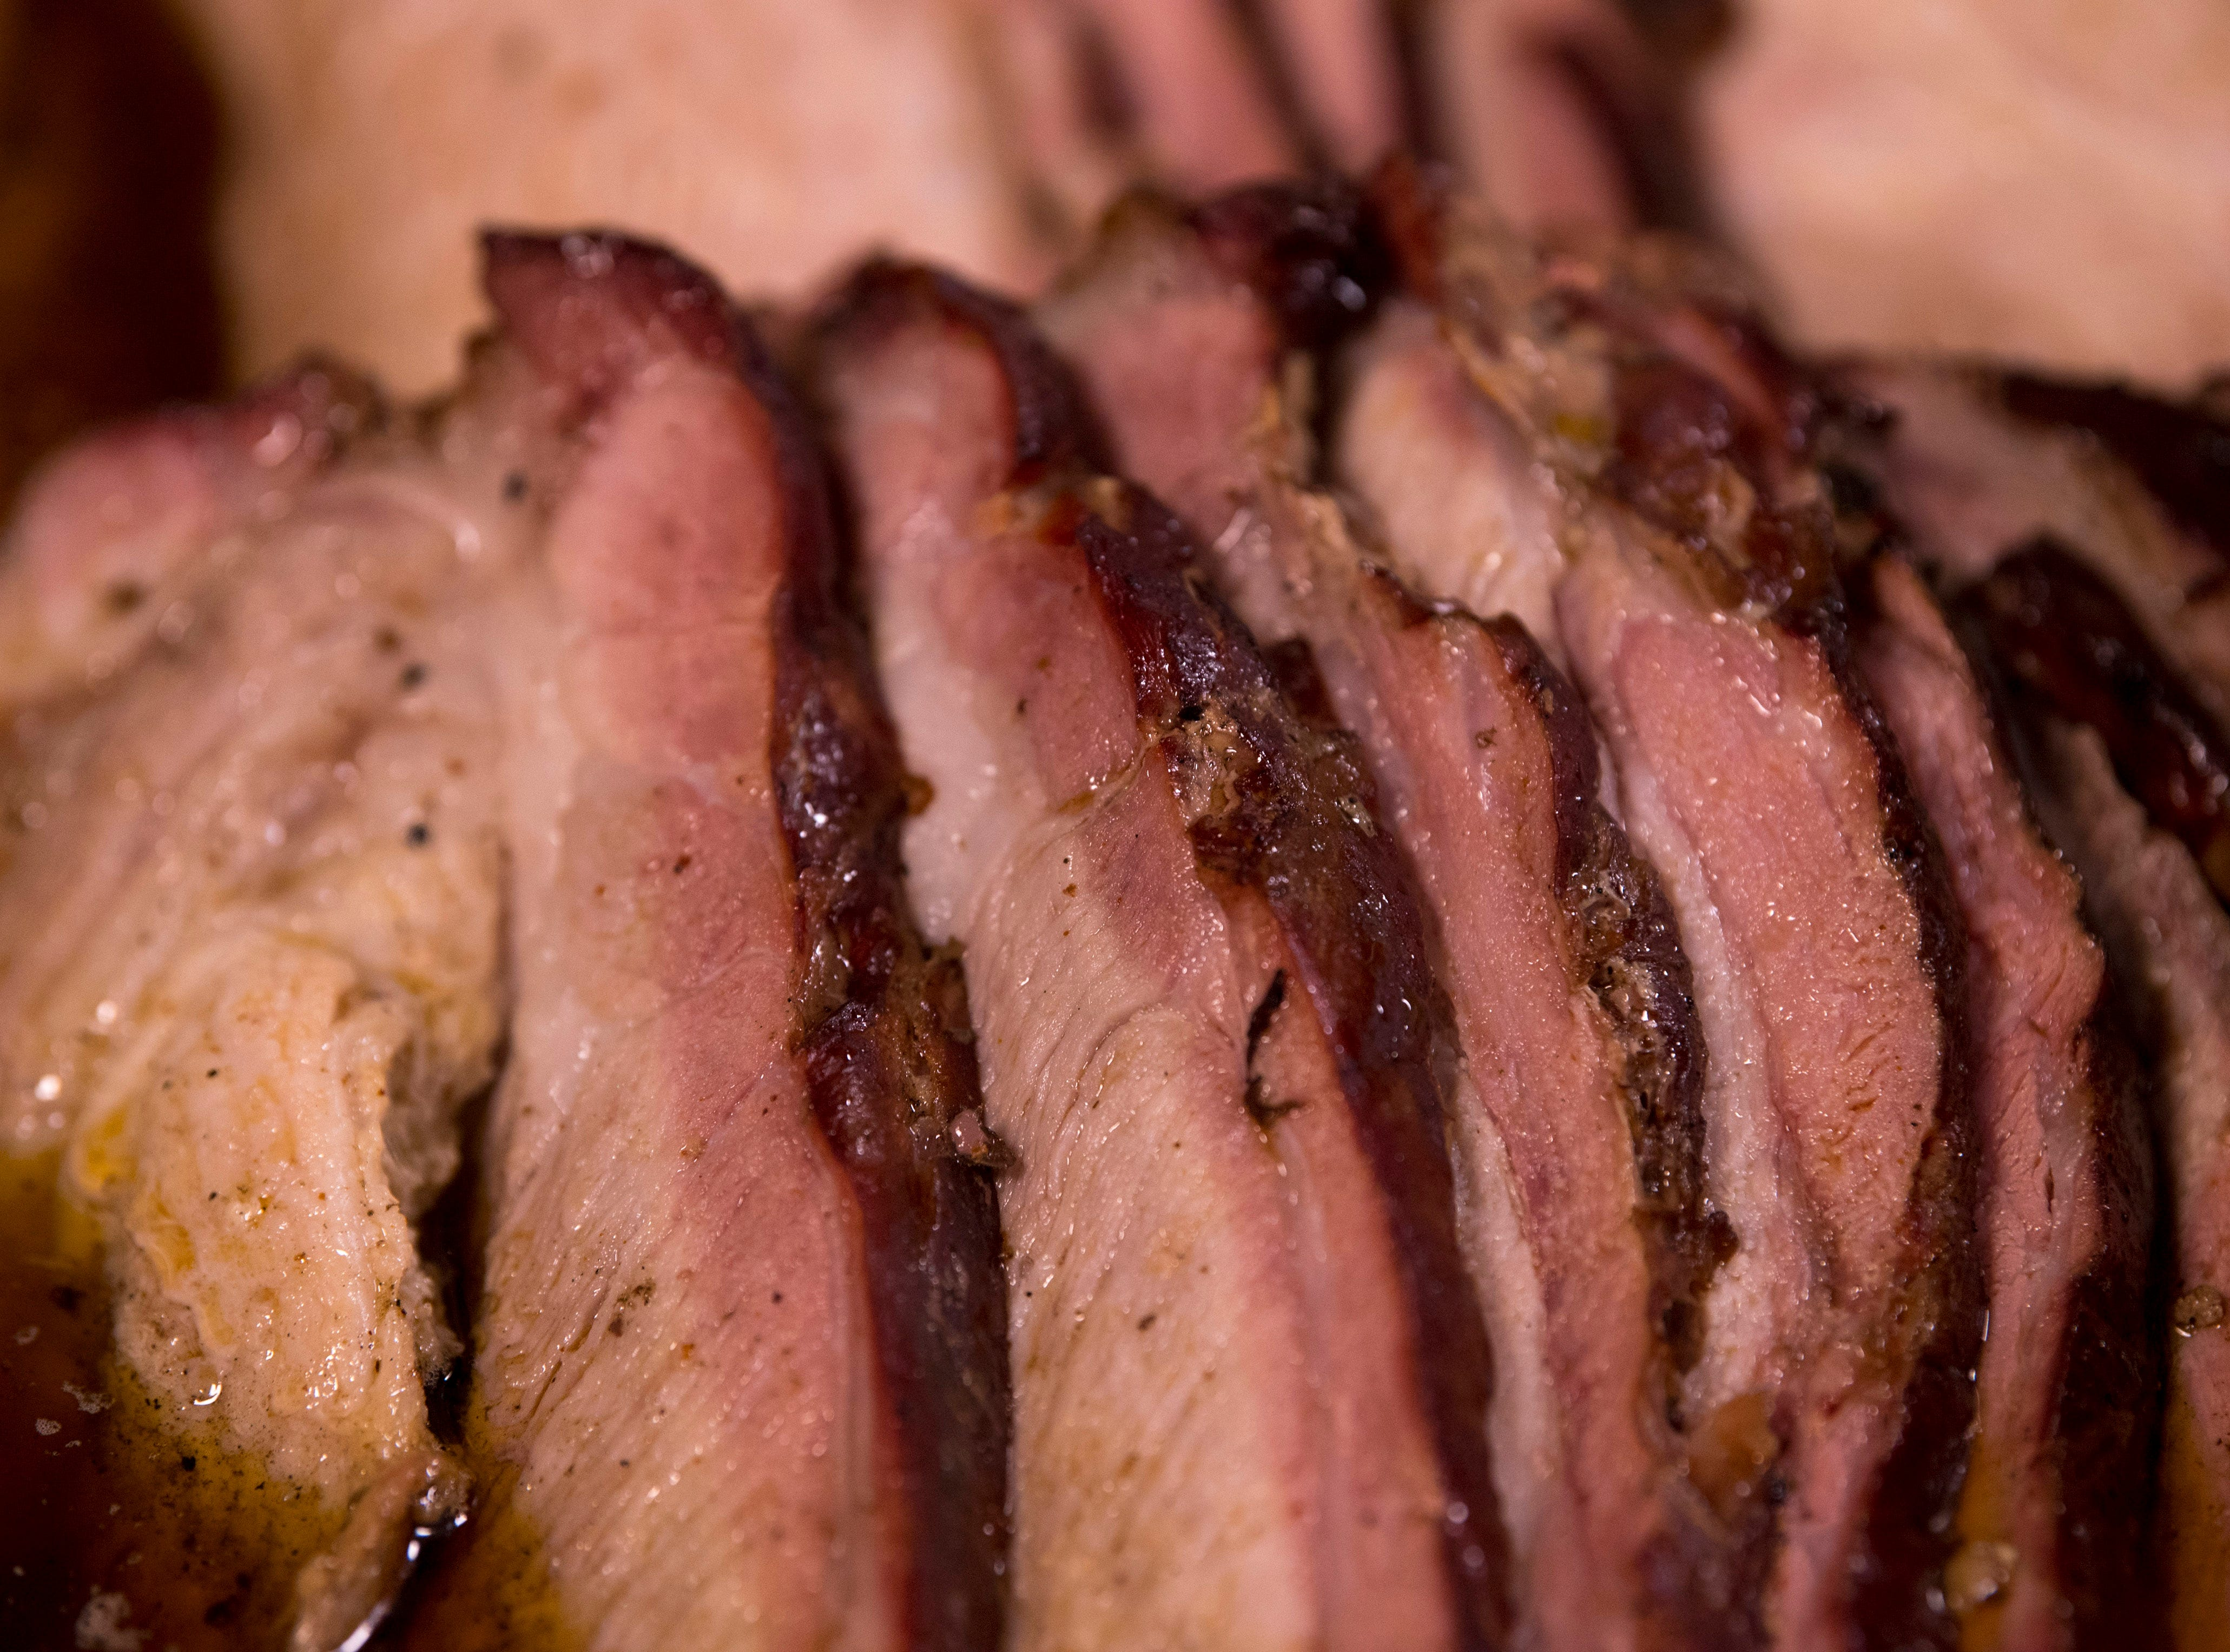 Smoked pork butt slices show off nearly a one-inch wide smoke ring at Gatrick's Bar-B-Que and Fine Dishes Sunday morning. The special, and there's always a special at Gatrick's, was pork butts, greens, macaroni and cheese, dressing and corn cakes.